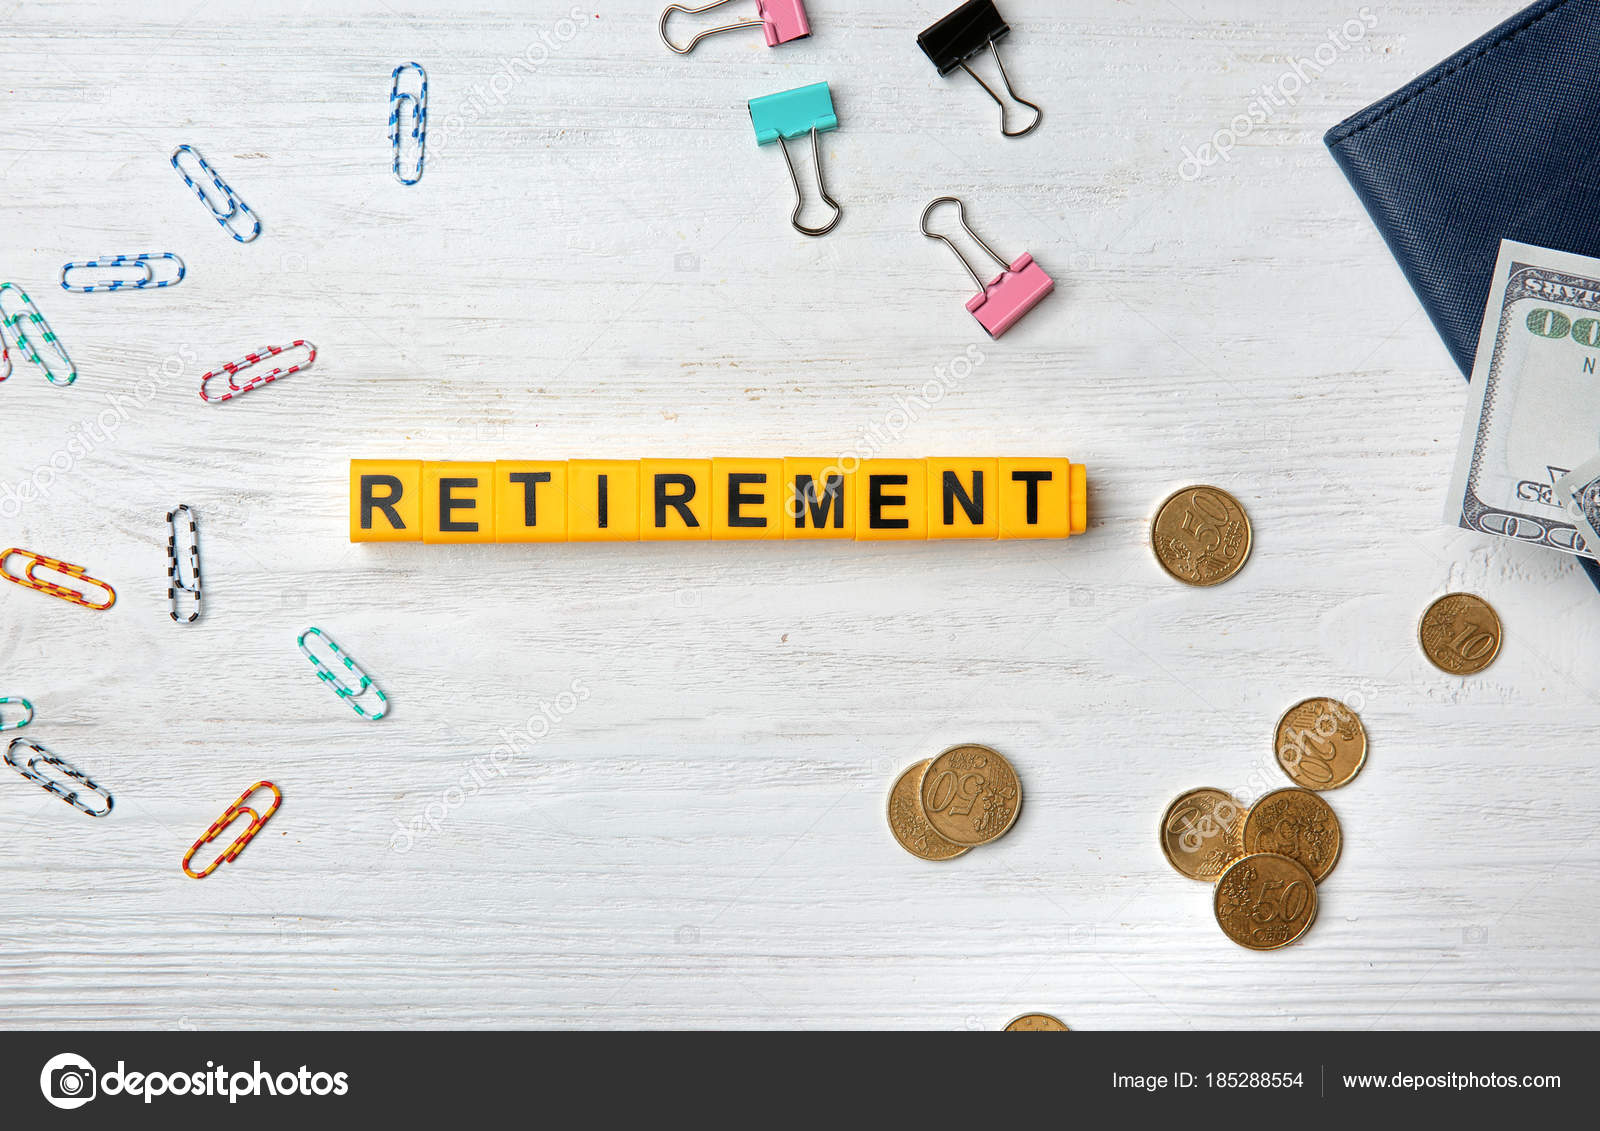 word retirement clips money light background pension planning